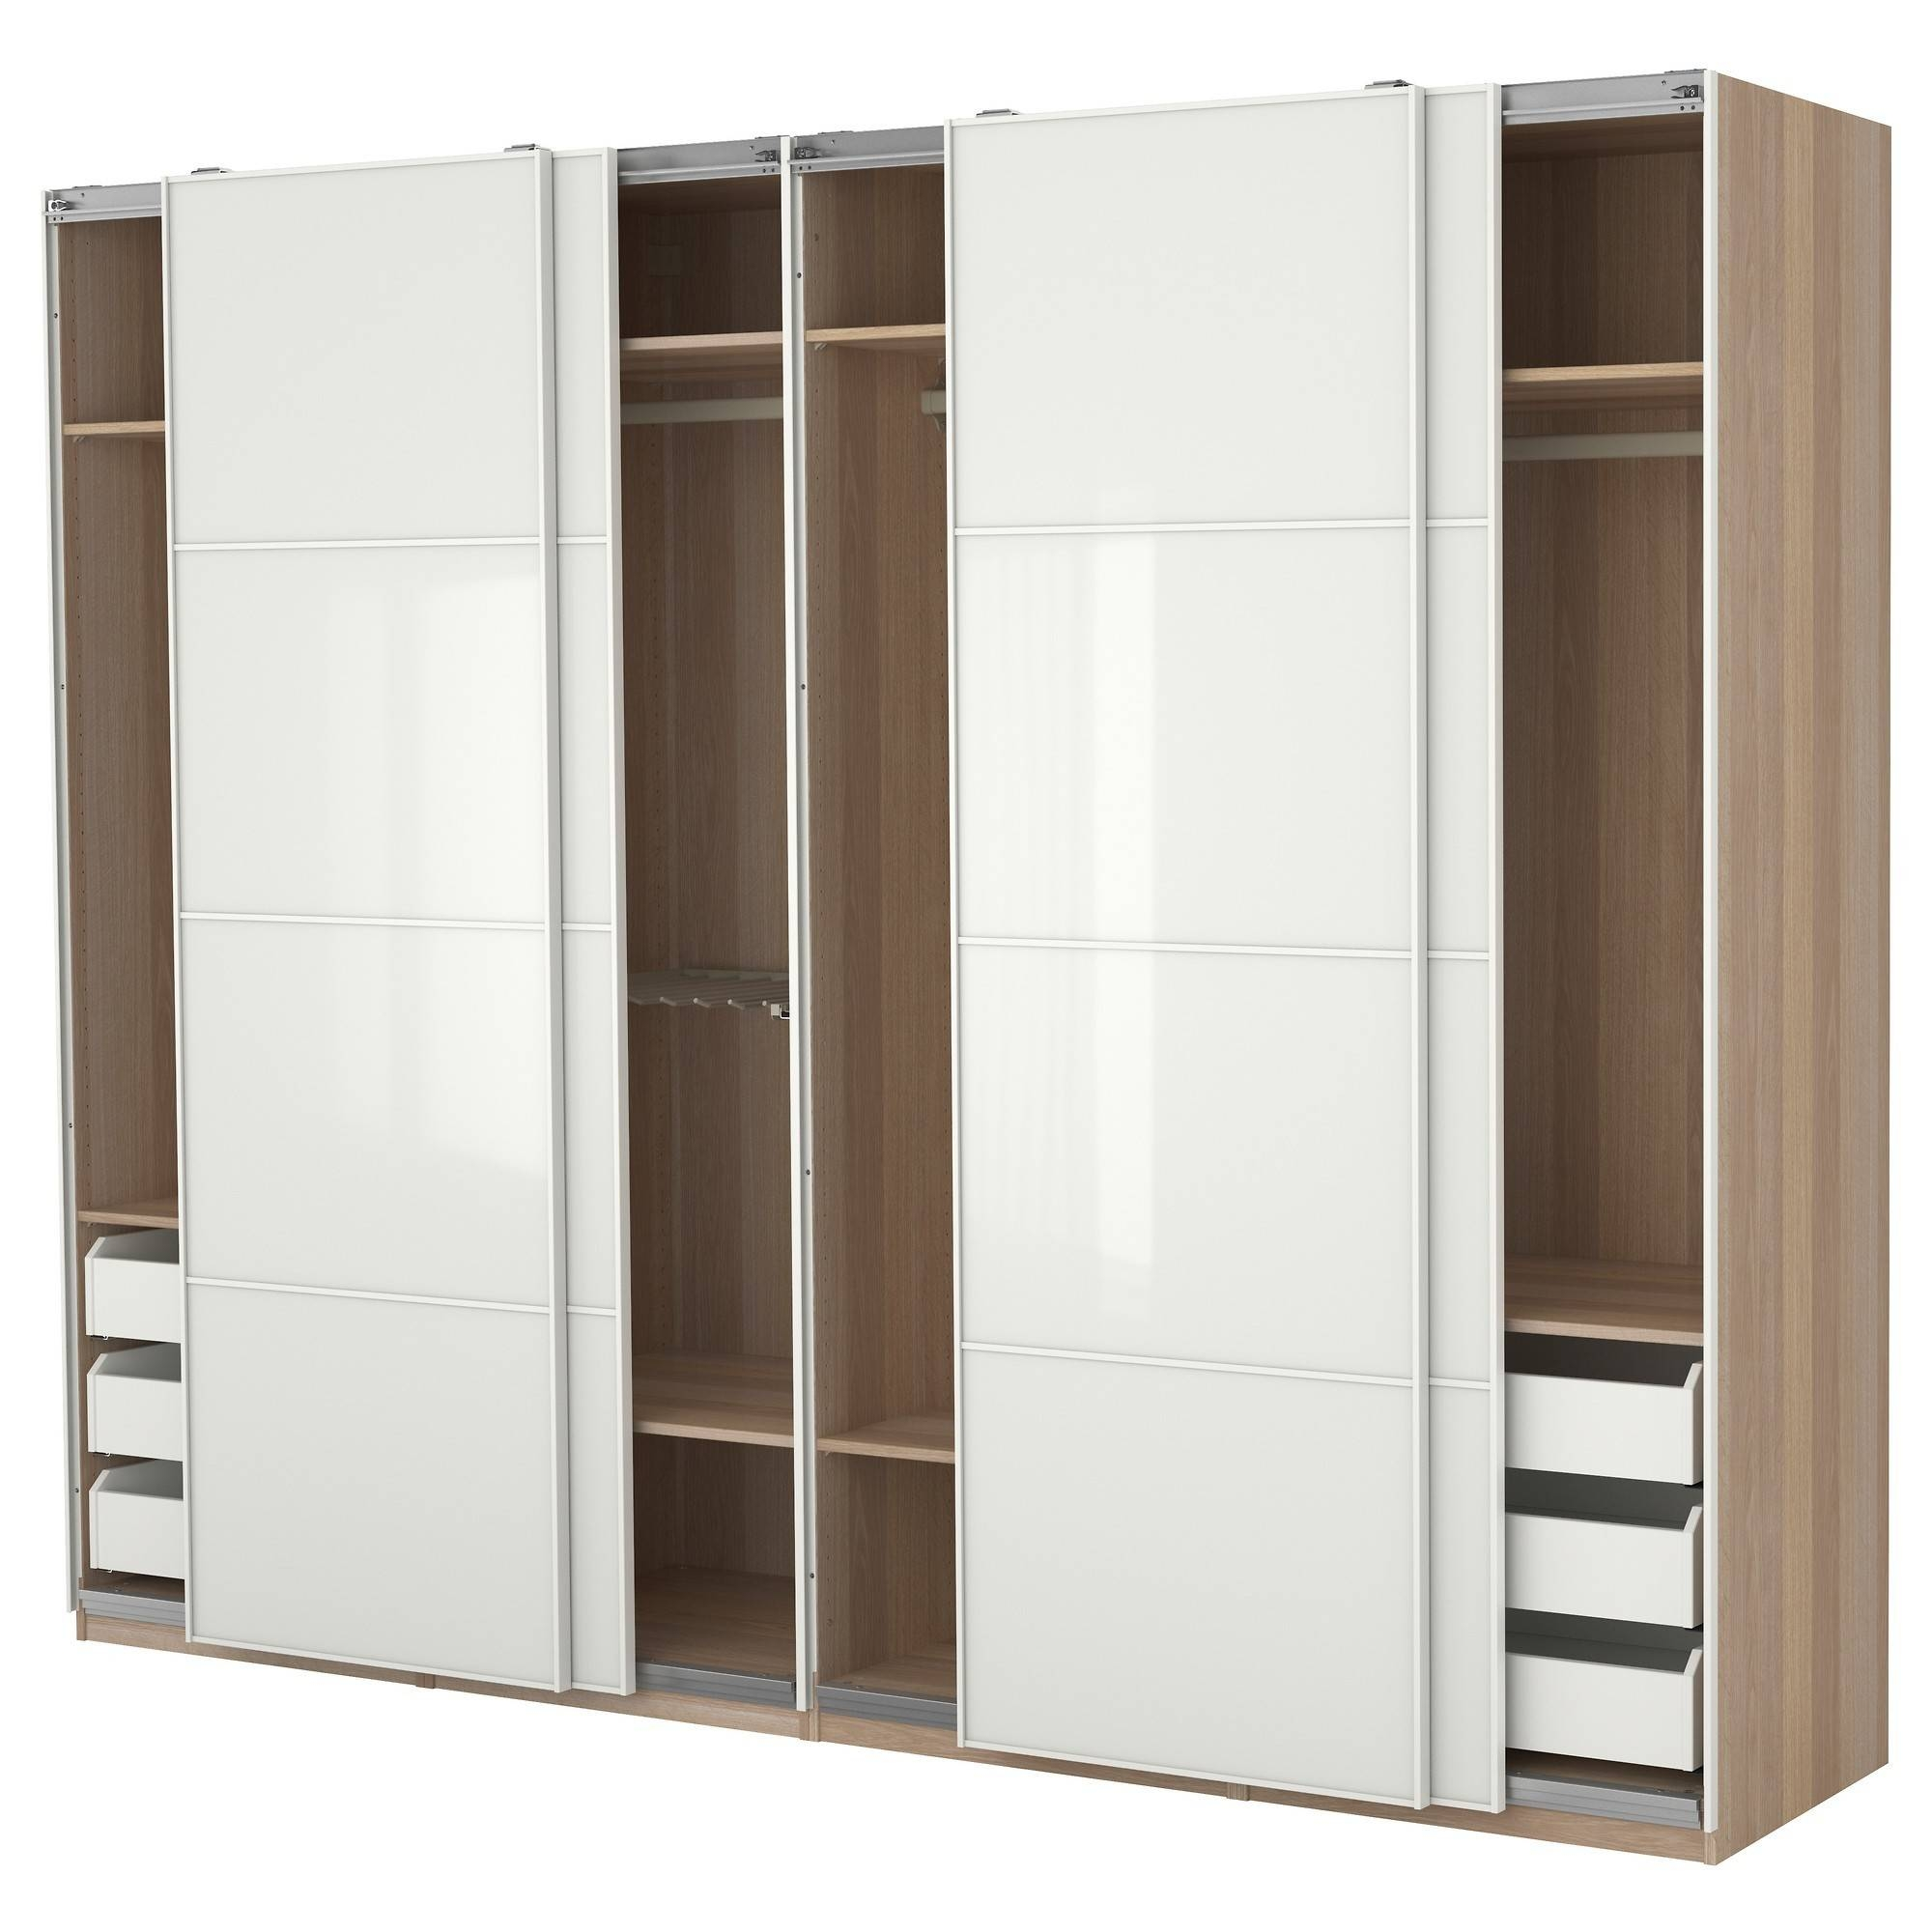 Furniture: Fancy Wardrobe Armoire For Wardrobe Organizer Idea for Wardrobes With Drawers and Shelves (Image 11 of 30)